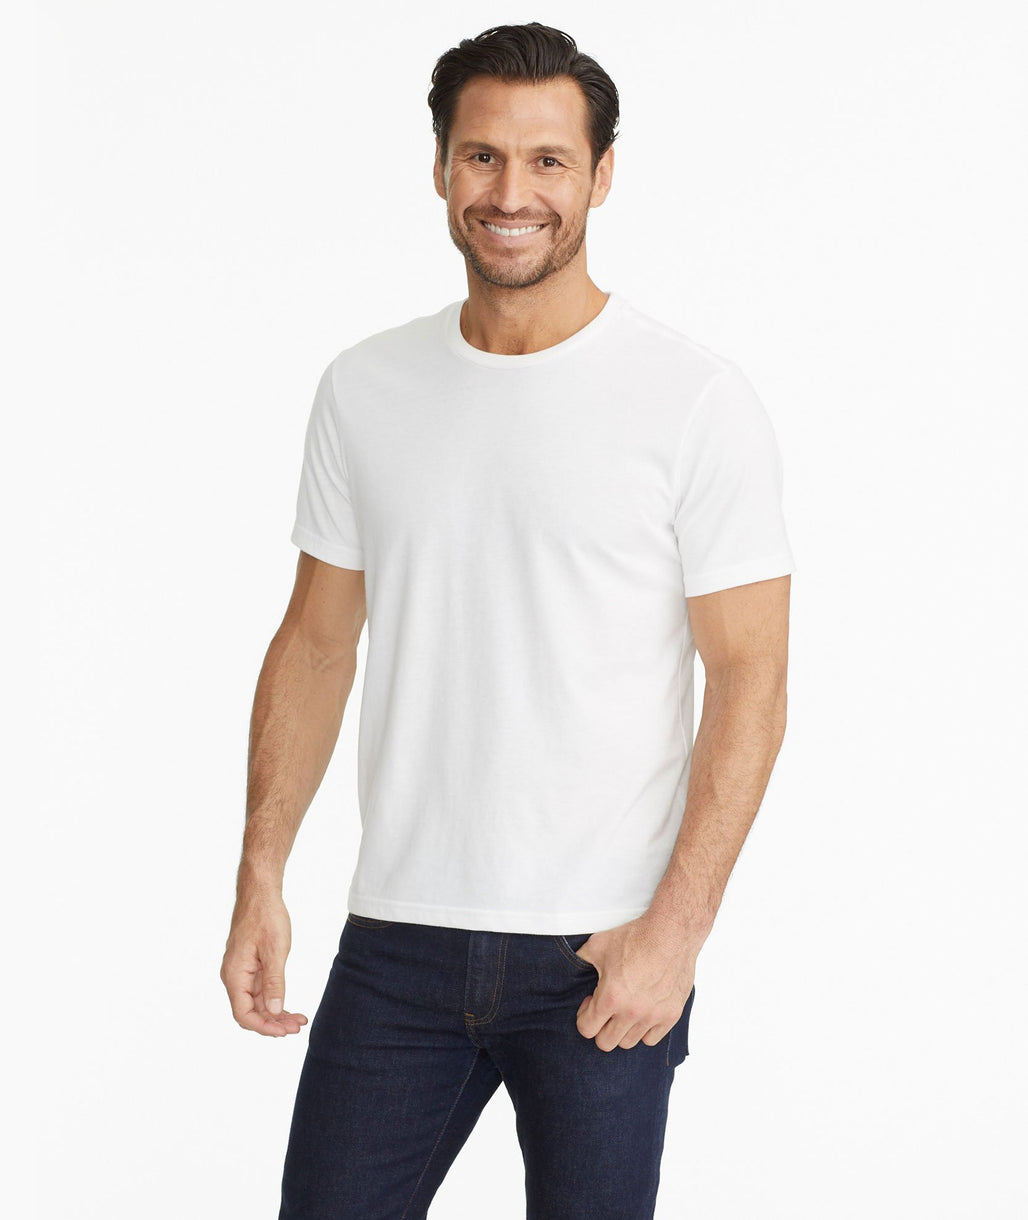 Model wearing a White The Ultrasoft Tee